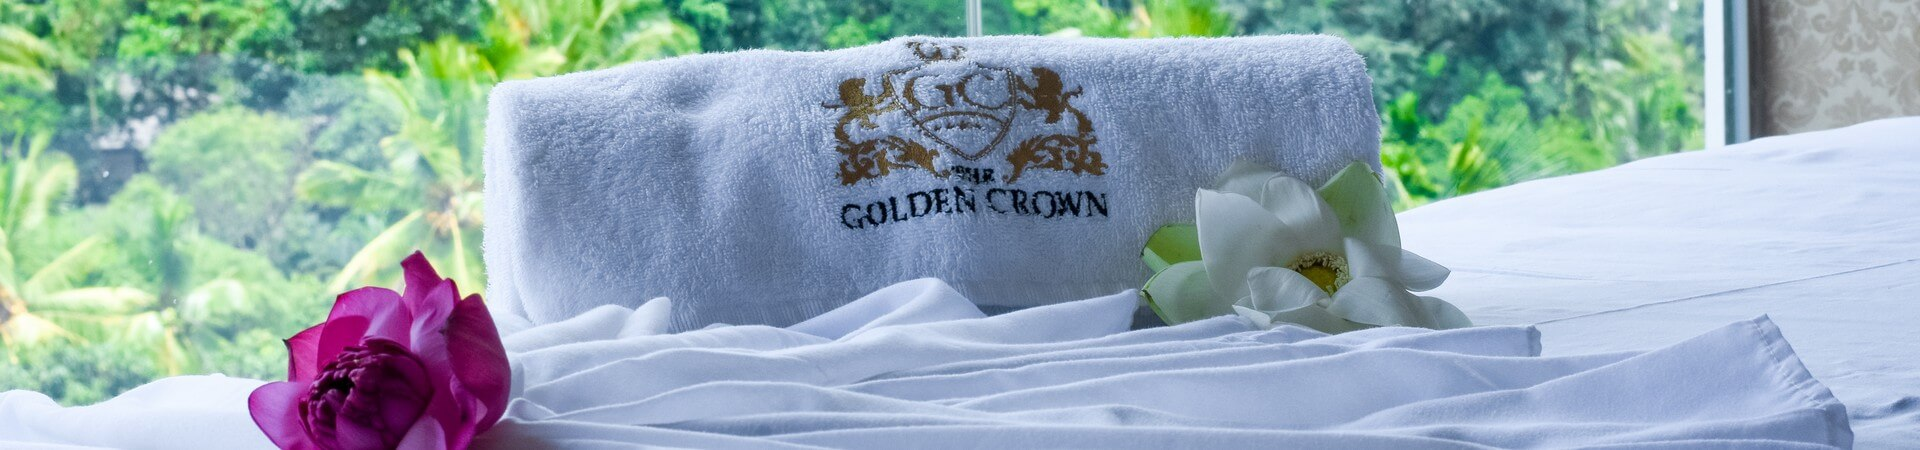 The Golden Crown - Reservation